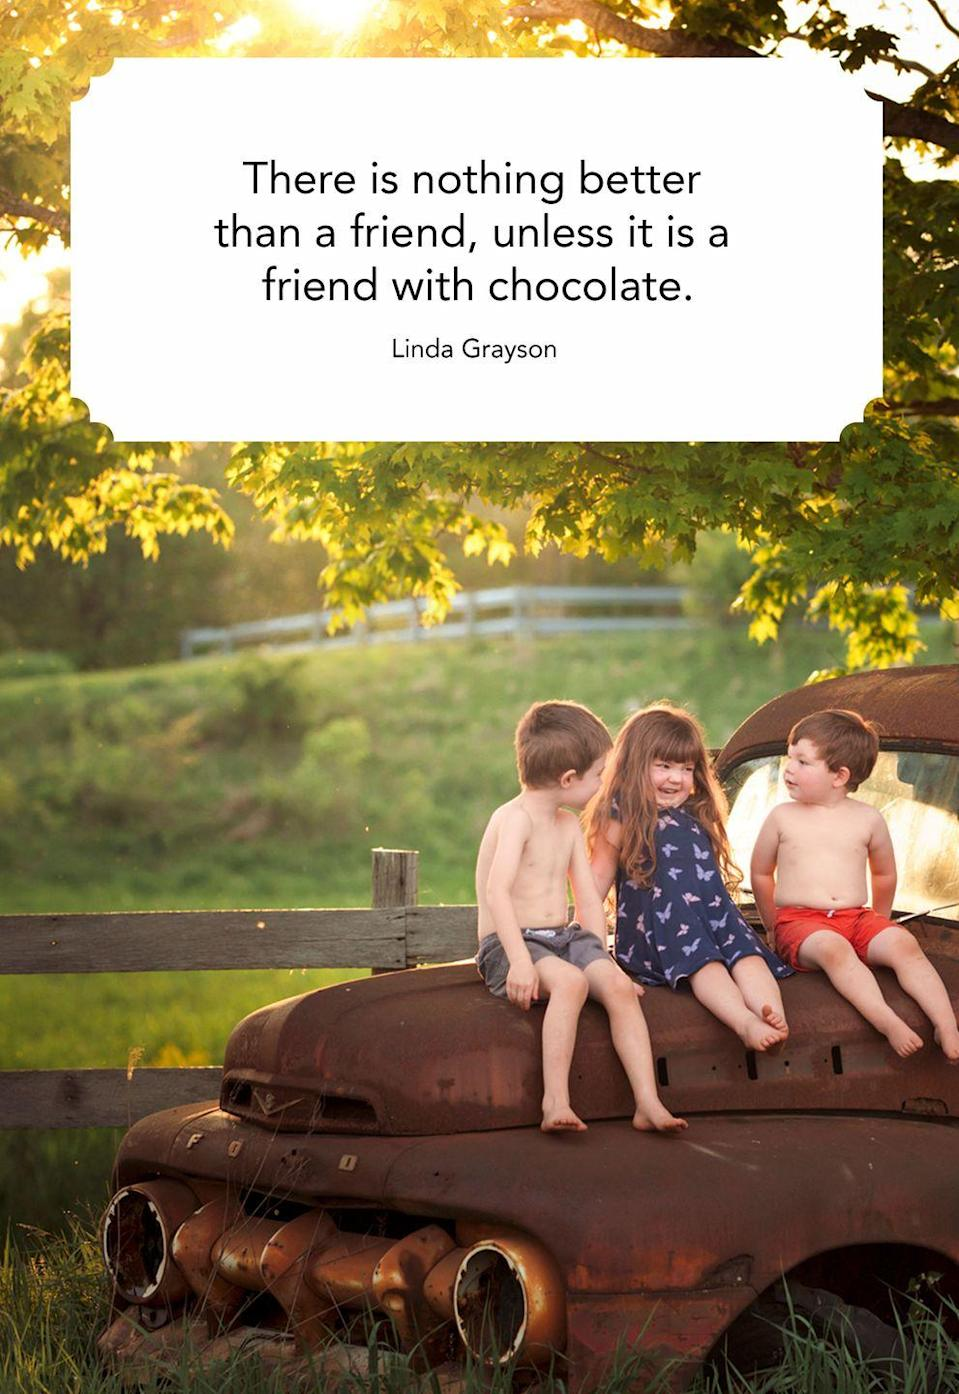 "<p>""There is nothing better than a friend, unless it is a friend with chocolate.""</p>"